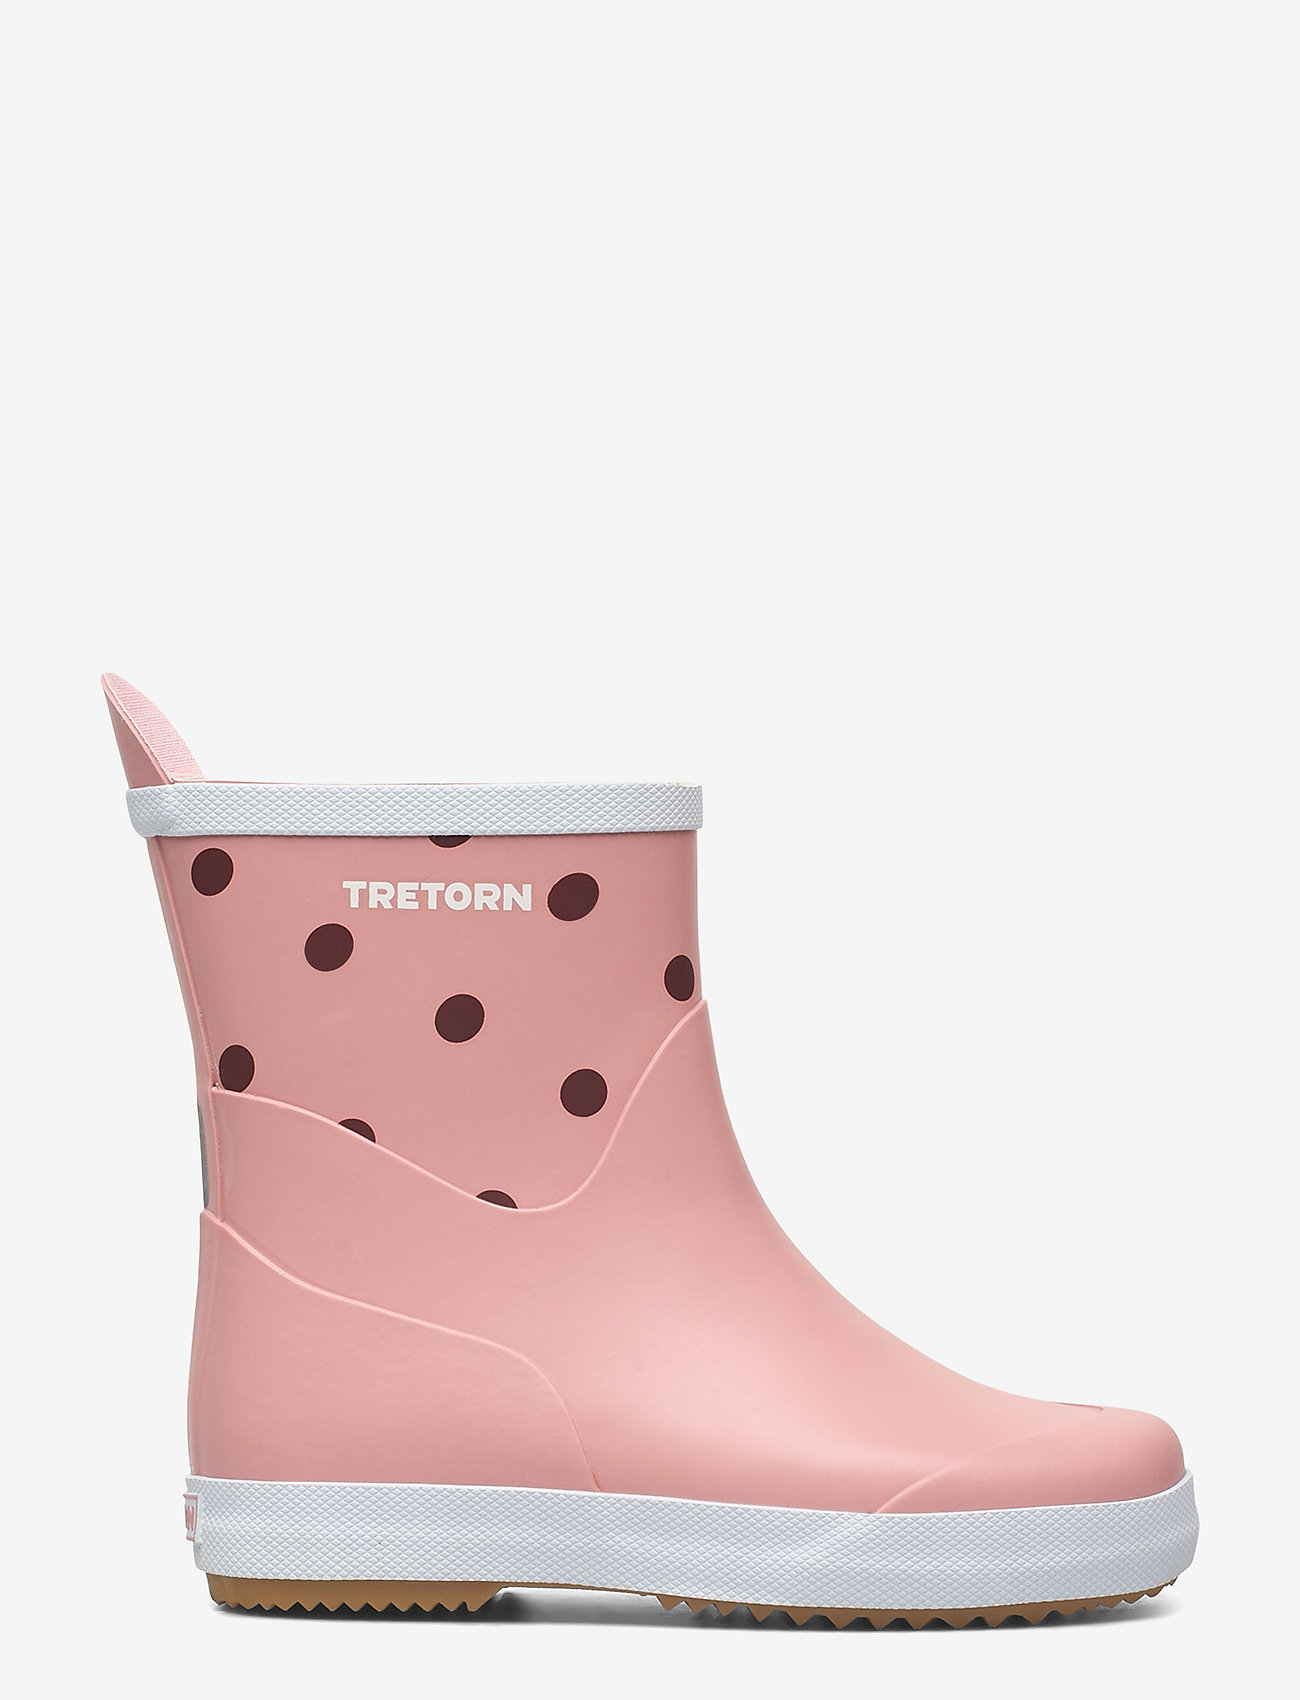 Tretorn - WINGS KIDS - bottes en chaouthouc - 097/light rose/ - 1